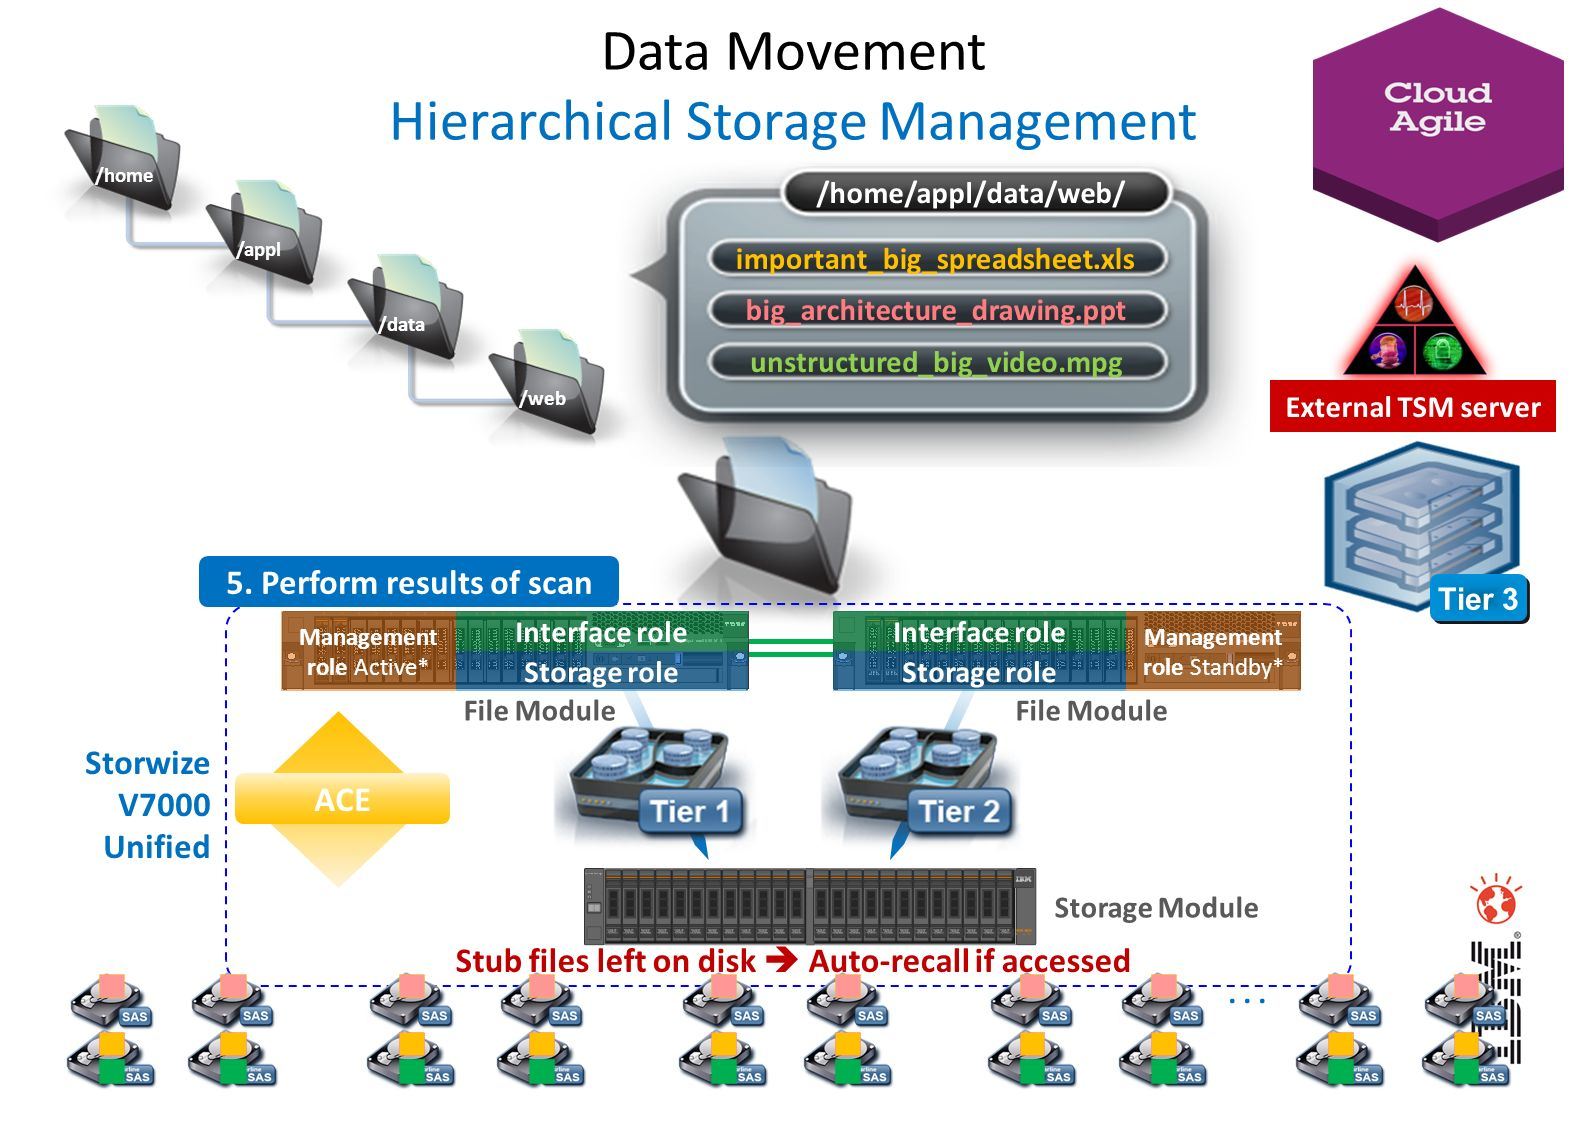 Data Movement Hierarchical Storage Management